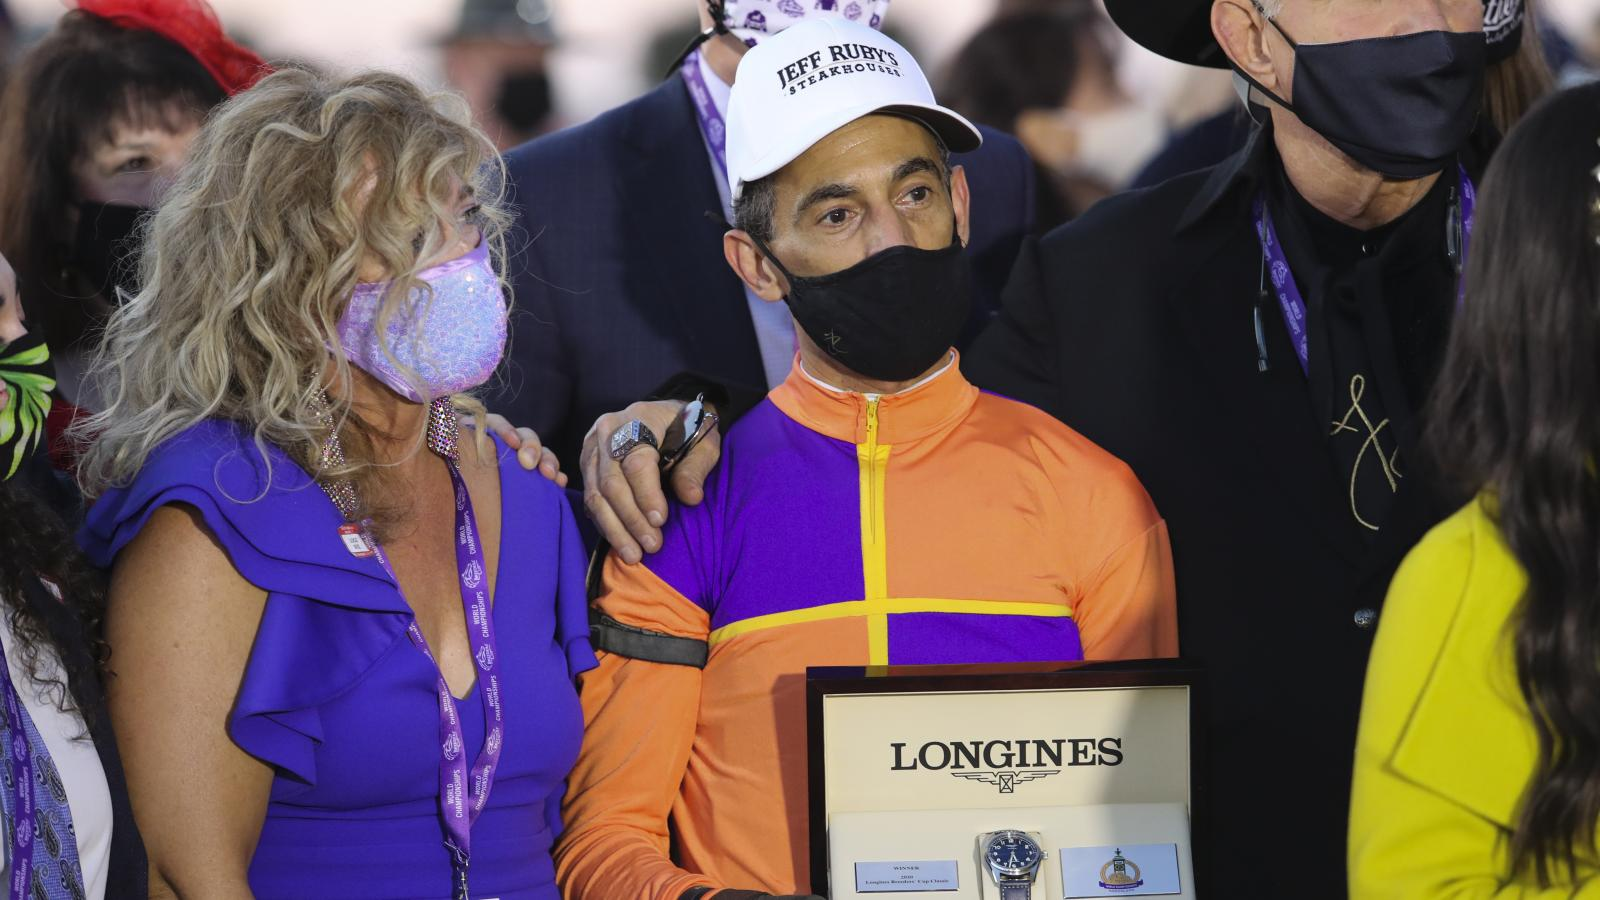 Longines was proud to time the victory of Authentic, ridden by John Velazquez, in the 37th Longines Breeders Cup Classic in Lexington, KY on November 7th.